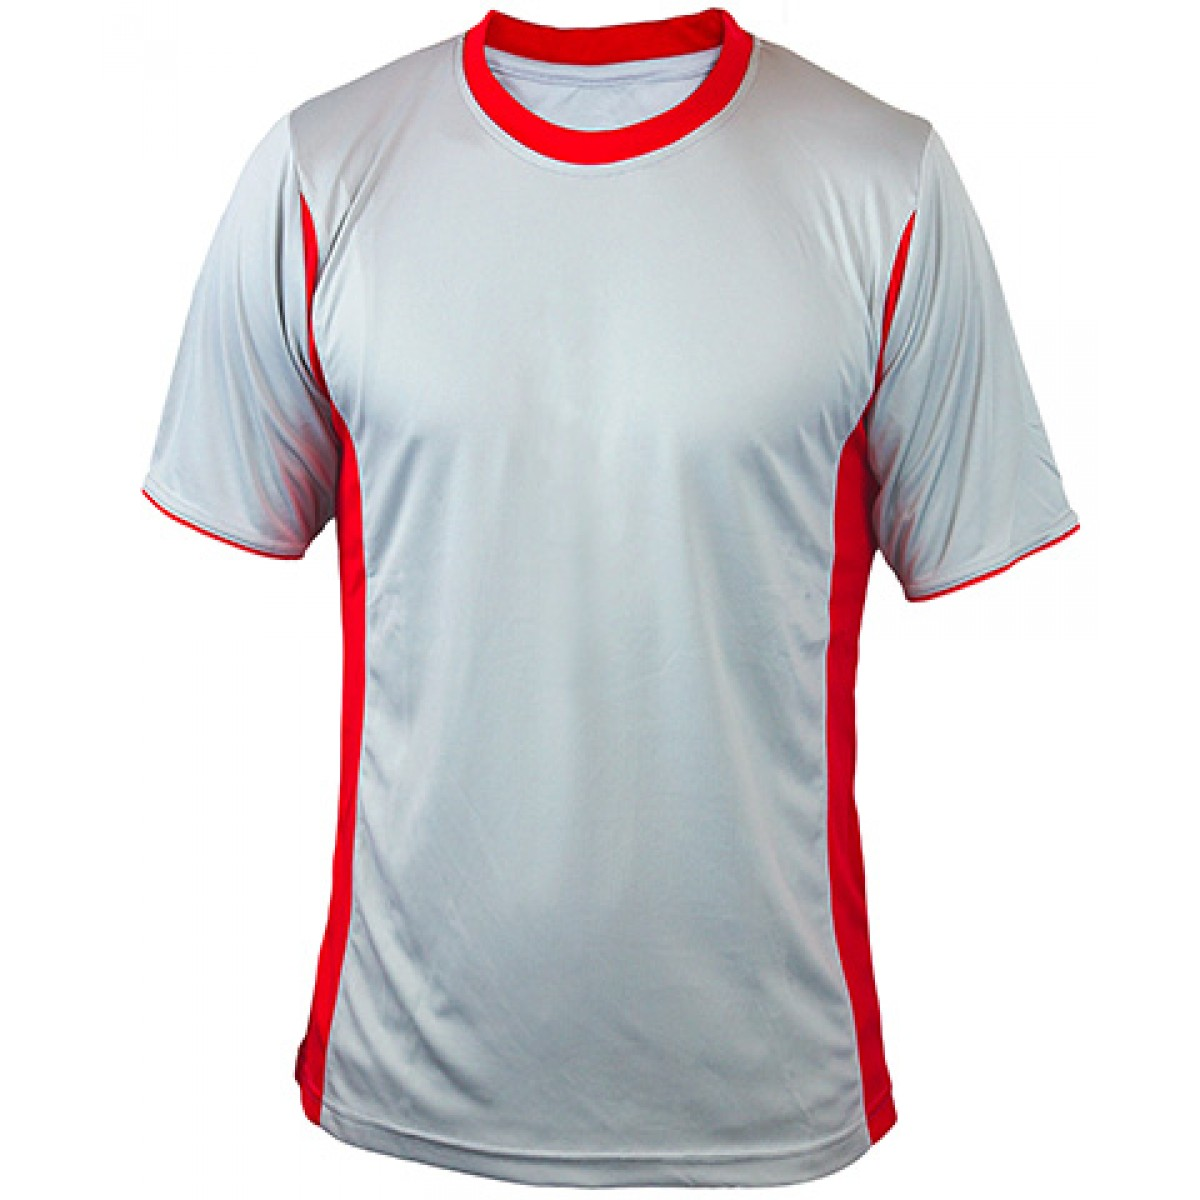 Gray Short Sleeves Performance With Red Side Insert